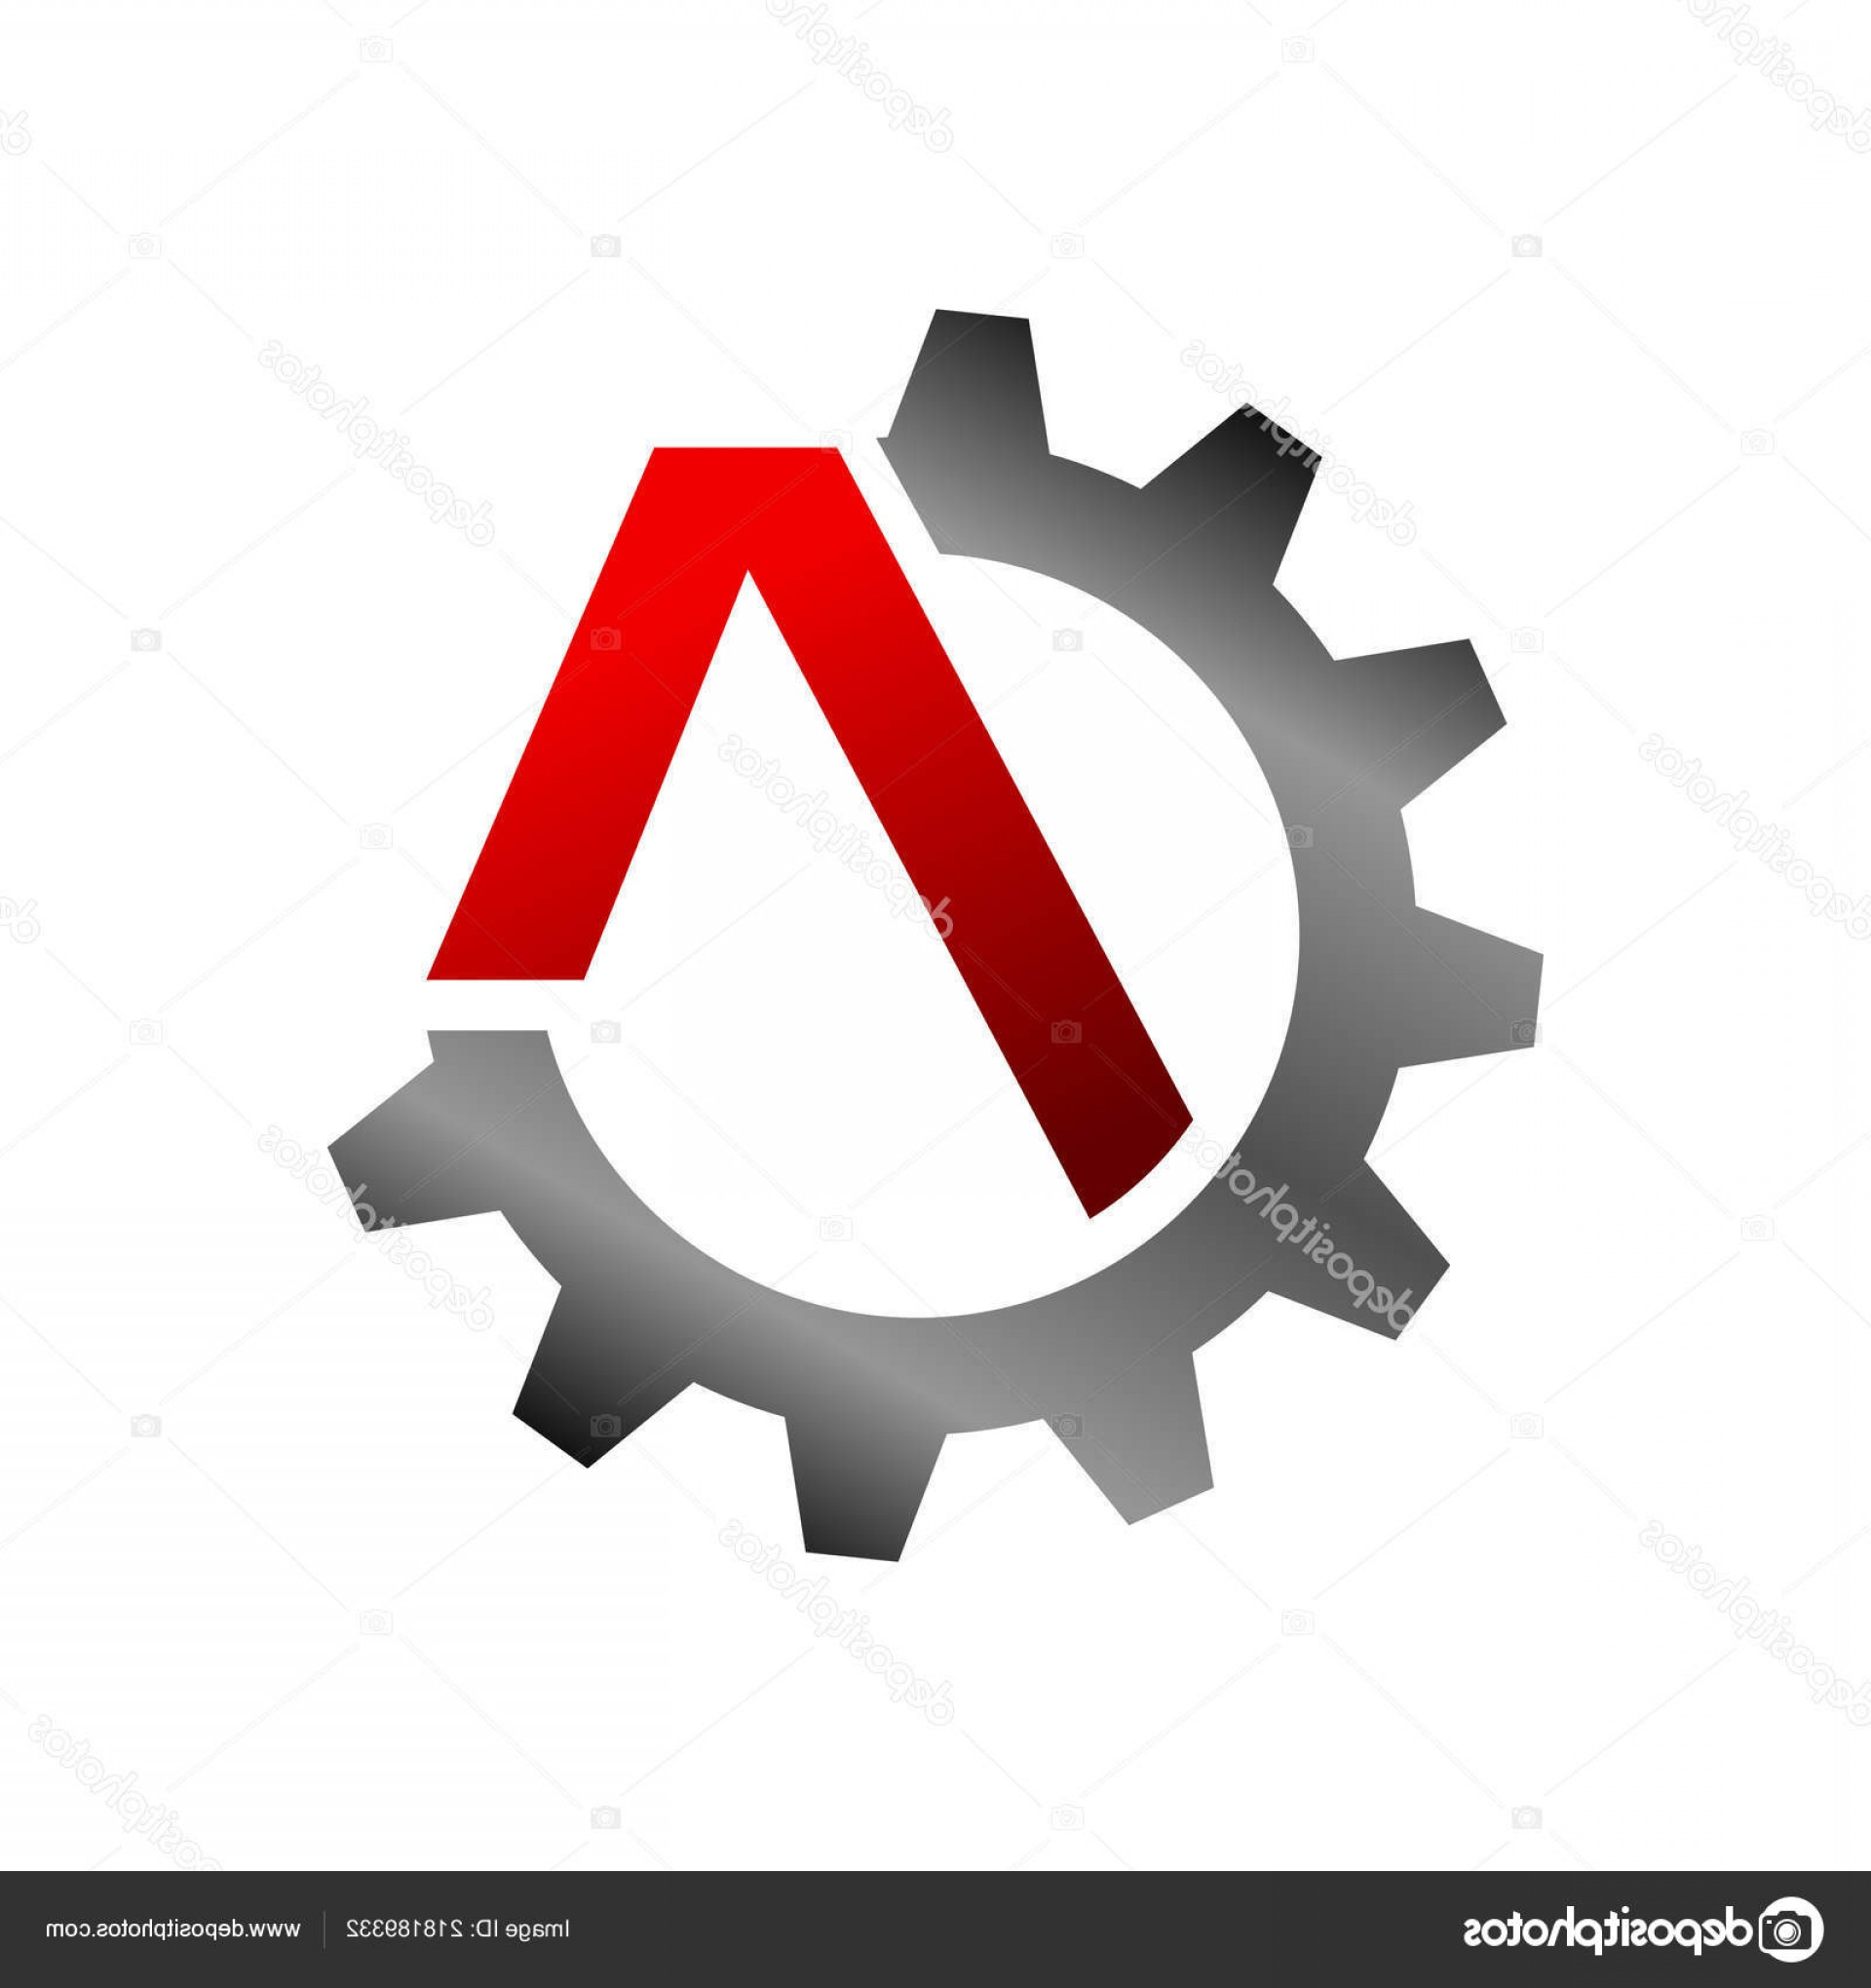 Vector Graphic Of Civil Engineering: Stock Illustration Civil Engineering Initial Lettermark Vector